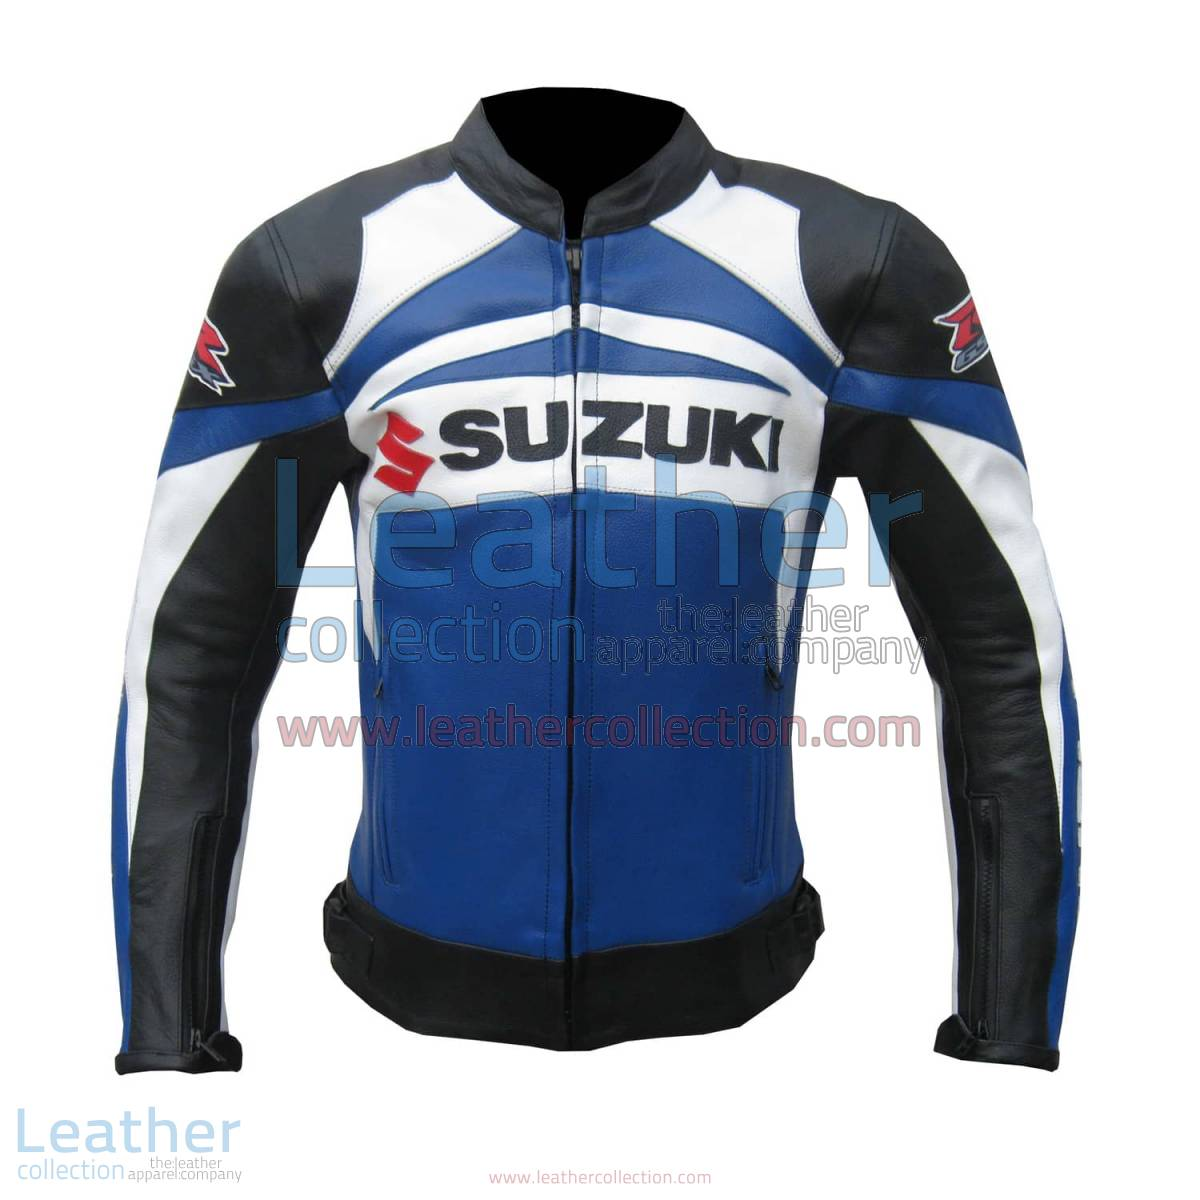 Suzuki GSXR Leather Jacket | Suzuki leather jacket